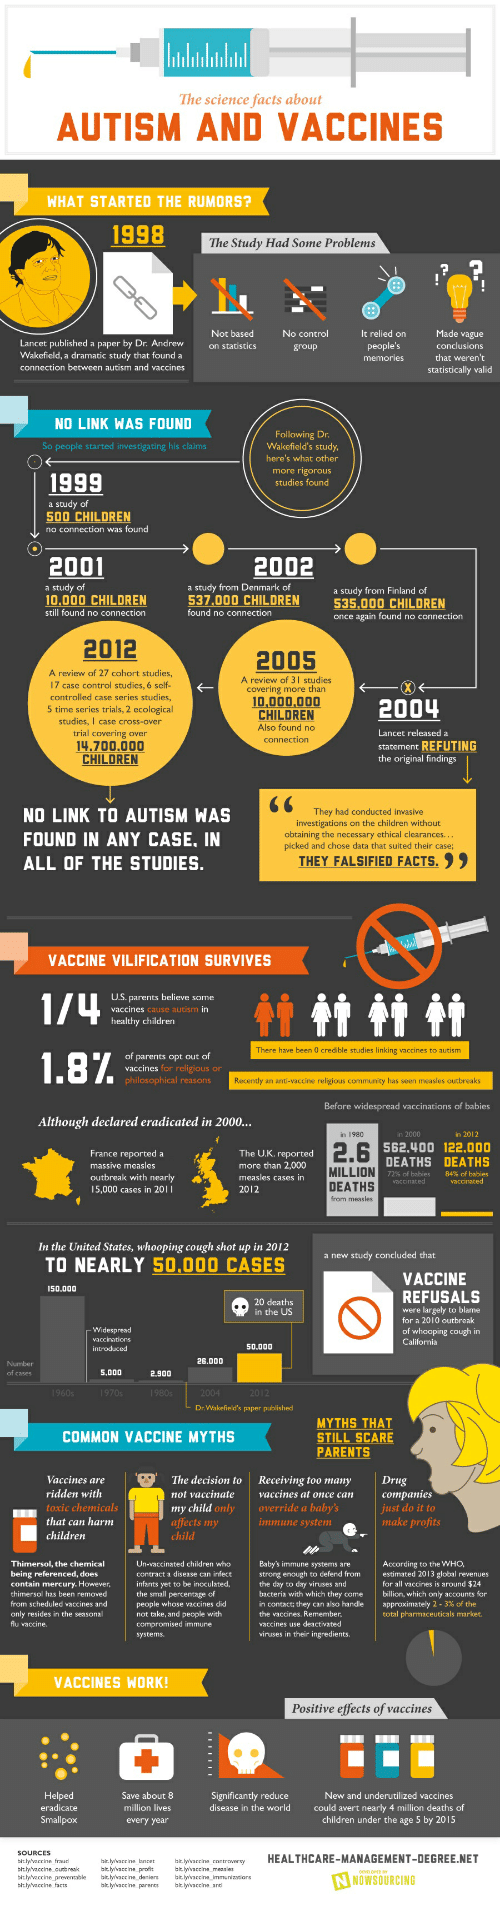 Children, Community, and Facts: The science facts about  AUTISM AND VACCINES  WHAT STARTED THE RUMORS?  1998  The Study Had Some Problems  Made vague  Not based  on statistics  cet  Wakefield, a dramatic study that found a  NO LINK WAS FOUND  Dr  So people started investigating  here's what other  1999  es  of  500 CHILDREN  no connection was found  2001  2002  of  of  10,000 CHILDREN  still found no connection  537,000 CHILDREN  a study from Finland of  535,000 CHILDREN  once again found no connection  2012  2005  A review of 27 cohort studies  17 case control studies, 6 self-  controlled case series studies  5 time series trials, 2 ecological  A review of 3l studies  covering more than  0.000.000  CHILDREN  Also found no  2004  case cross-over  trial covering over  4.700.000  statement REFUTING  the original findings  NO LINK TO AUTISM WAS  FOUND IN ANY CASE. IN  ALL OF THE STUDIES.  They had conducted invasive  investigations on the children without  obtaining the necessary ethical clearances.  picked and chose data that suited their case:  THEY FALSIFIED FACTS.9  VACCINE VILIFICATION SURVIVES  vaccines cause autism in  There have been 0 credible studies linking vaccines to autism  of parents opt out of  for r  Recenty an anti-vaccine religious community has seen measles outbreaks  Although declared eradicated in 2000...  in 1980  562.400 122.000  DEATHS DEATHS  The U.K. reported  massive measles  MILLION  72% of babies  84% of babies  DEATHS  from measles  15,000 cases in 201  In the United States, whooping cough shot up in 2012  TO NEARLY 50,000 CASES anew studycth  VACCINE  REFUSALS  50.000  in the US  0.000  26.000  5.000  2.900  Dr. Wakefield's paper published  MYTHS THAT  STILL SCARE  PARENTS  COMMON VACCINE MYTHS  Vaccines areThe decision to Receiving too many Drug  ridden with  not vaccinate  vaccines at once can  emic  my child only override a baby's  just do it to  immune system  that can harm  children  ts  Thimersol, the chemical  being referenced, does  Un-vaccinated children who  Baby's immune systems are  strong enough to defend from  the day to day viruses and  bacteria with which they come billion, which only accounts for  in contact, teγ can also hande | approximately 2-3% of the  estimated 2013 global revenues  for all vaccines is around $24  in mercury. However,  thimersol has been removed  from scheduled vaccines and  only resides in the seasonal  infants yet to be inoculated  the small percentage of  people whose vaccines did  not take, and people with  viruses in theiri  VACCINES WORK  Positive effects of vaccines  Save about 8  million lives  New and underutilized vaccines  could avert nearly 4 million deaths of  children under the age 5 by 2015  disease in the world  bitlylvaccine frau  bitlyvaccine lancbtlyvaccine coroversy HEALTHCARE-MANAGEMENT-DEGREE.NET  bit.lelvaccine prevenable bitlyrvaccine deniers biwaccine immunizations  bitlylvaccine facts  N NOWSOURCING